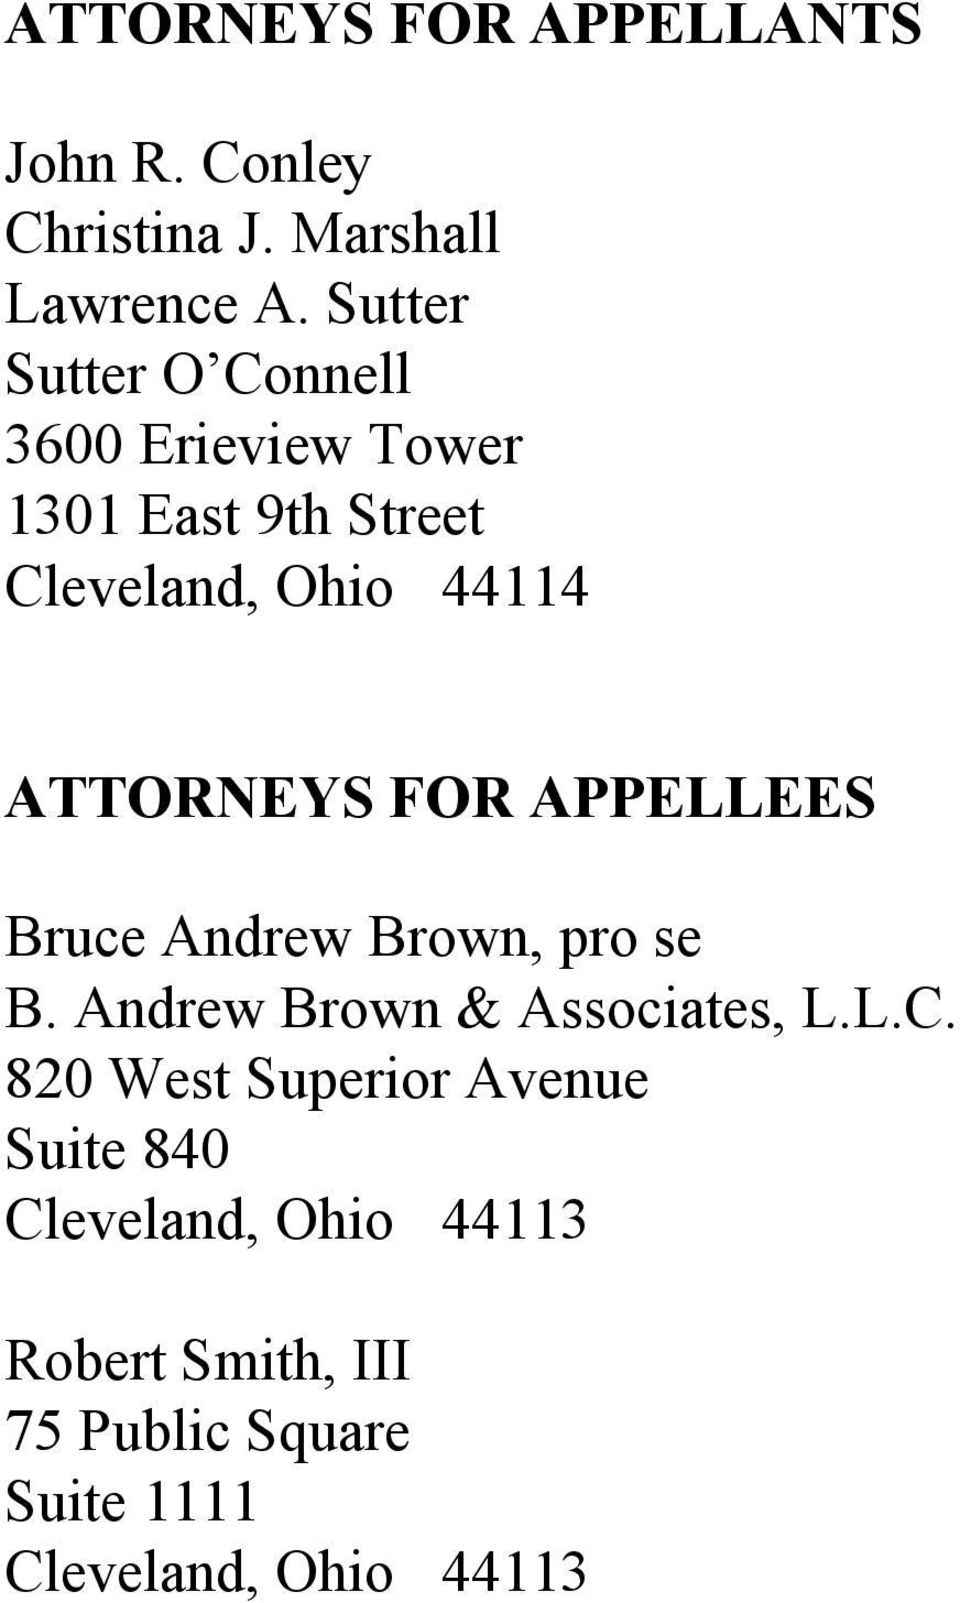 ATTORNEYS FOR APPELLEES Bruce Andrew Brown, pro se B. Andrew Brown & Associates, L.L.C.